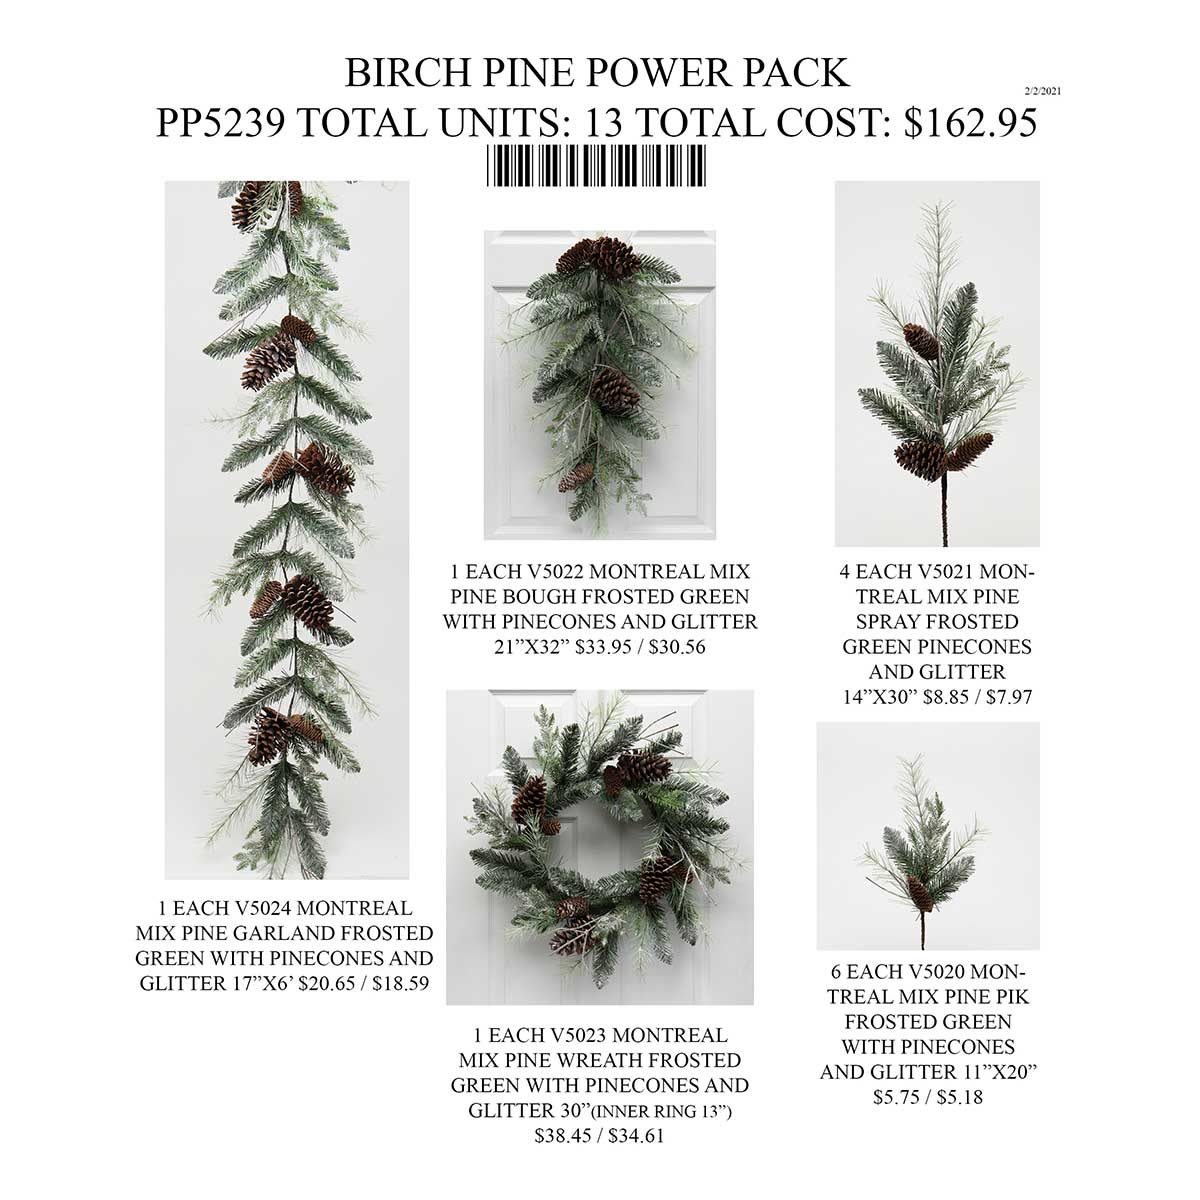 BIRCH PINE POWER PACK 13 UNITS PP5239